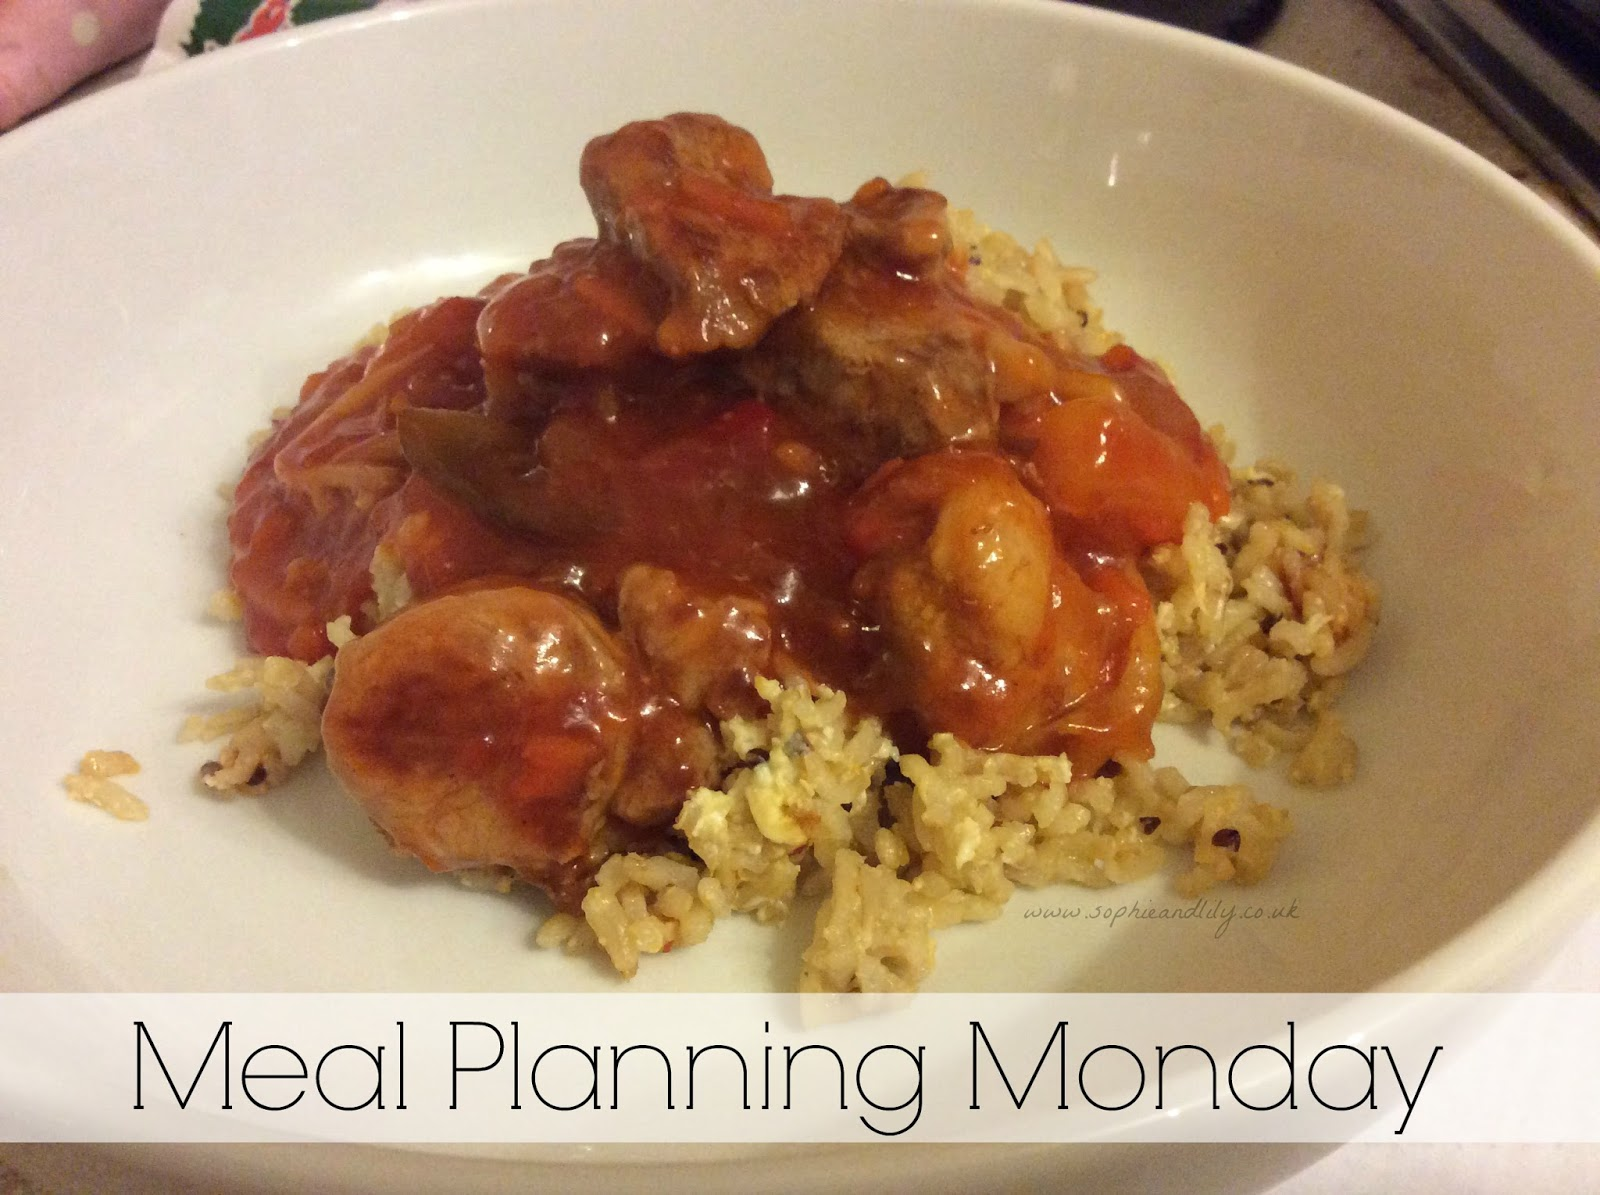 Meal planning Monday example of sweet and sour pork